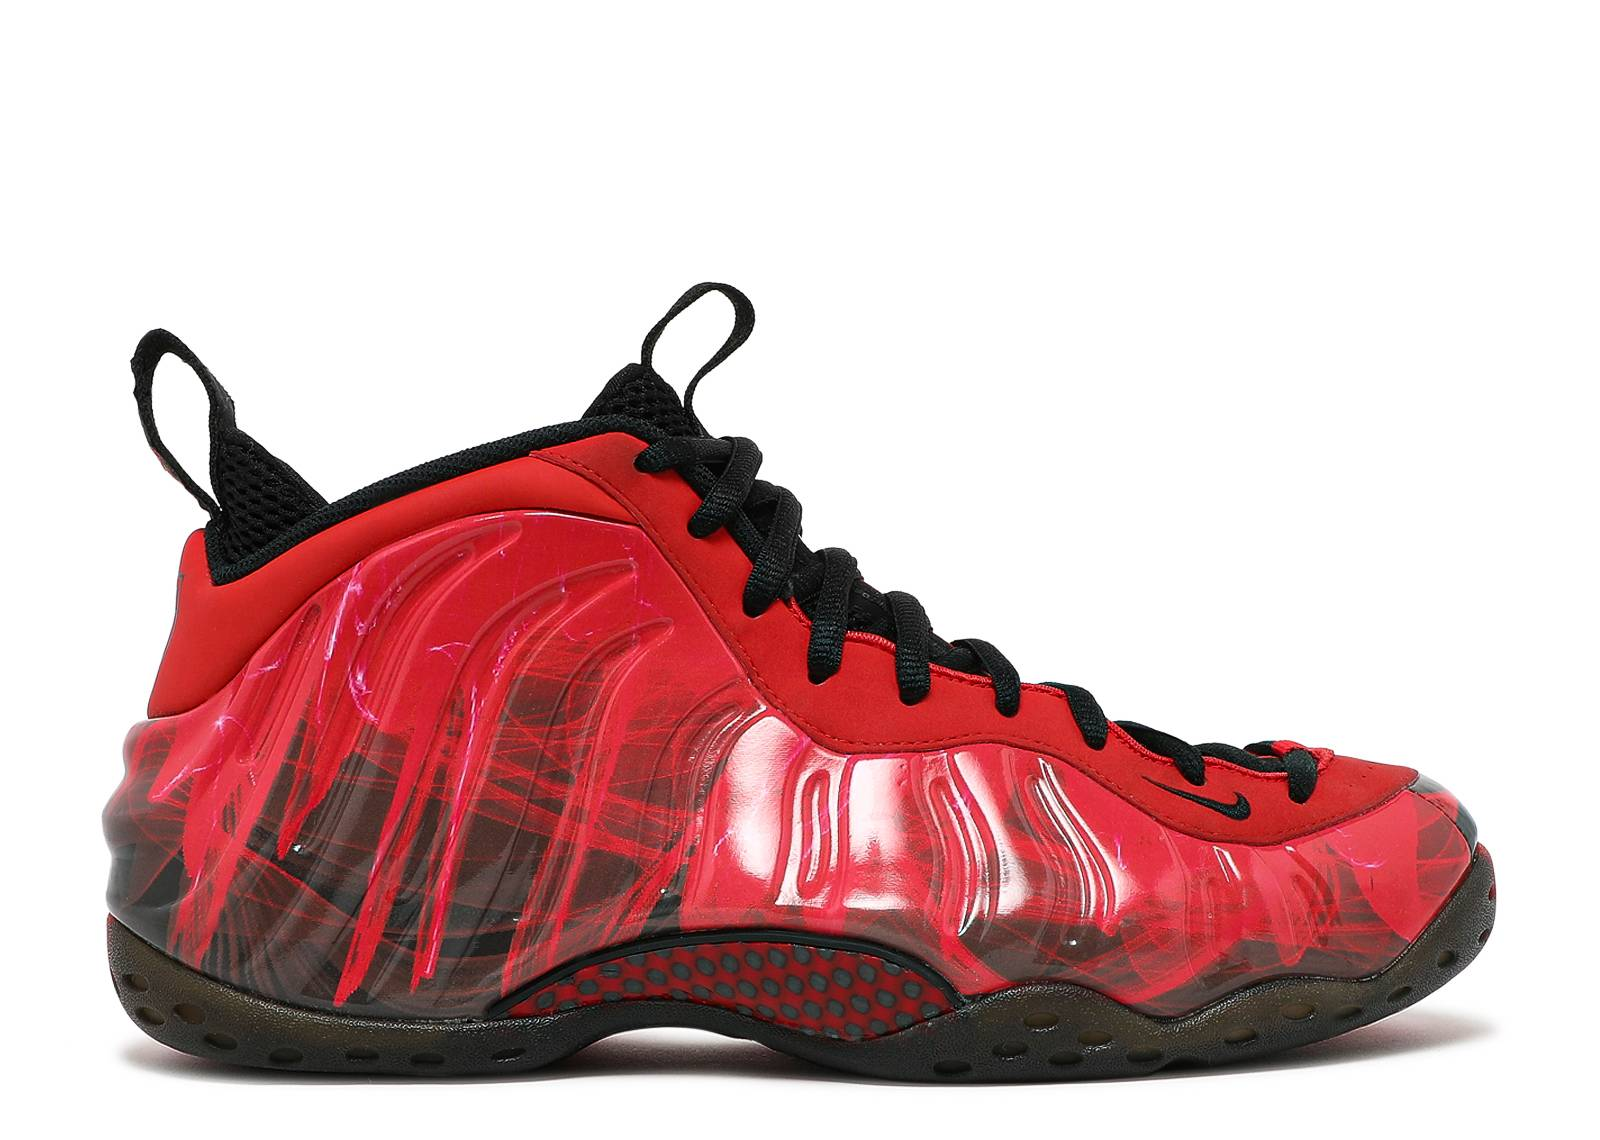 f1859d6d8248 Air Foamposite One Premium Db